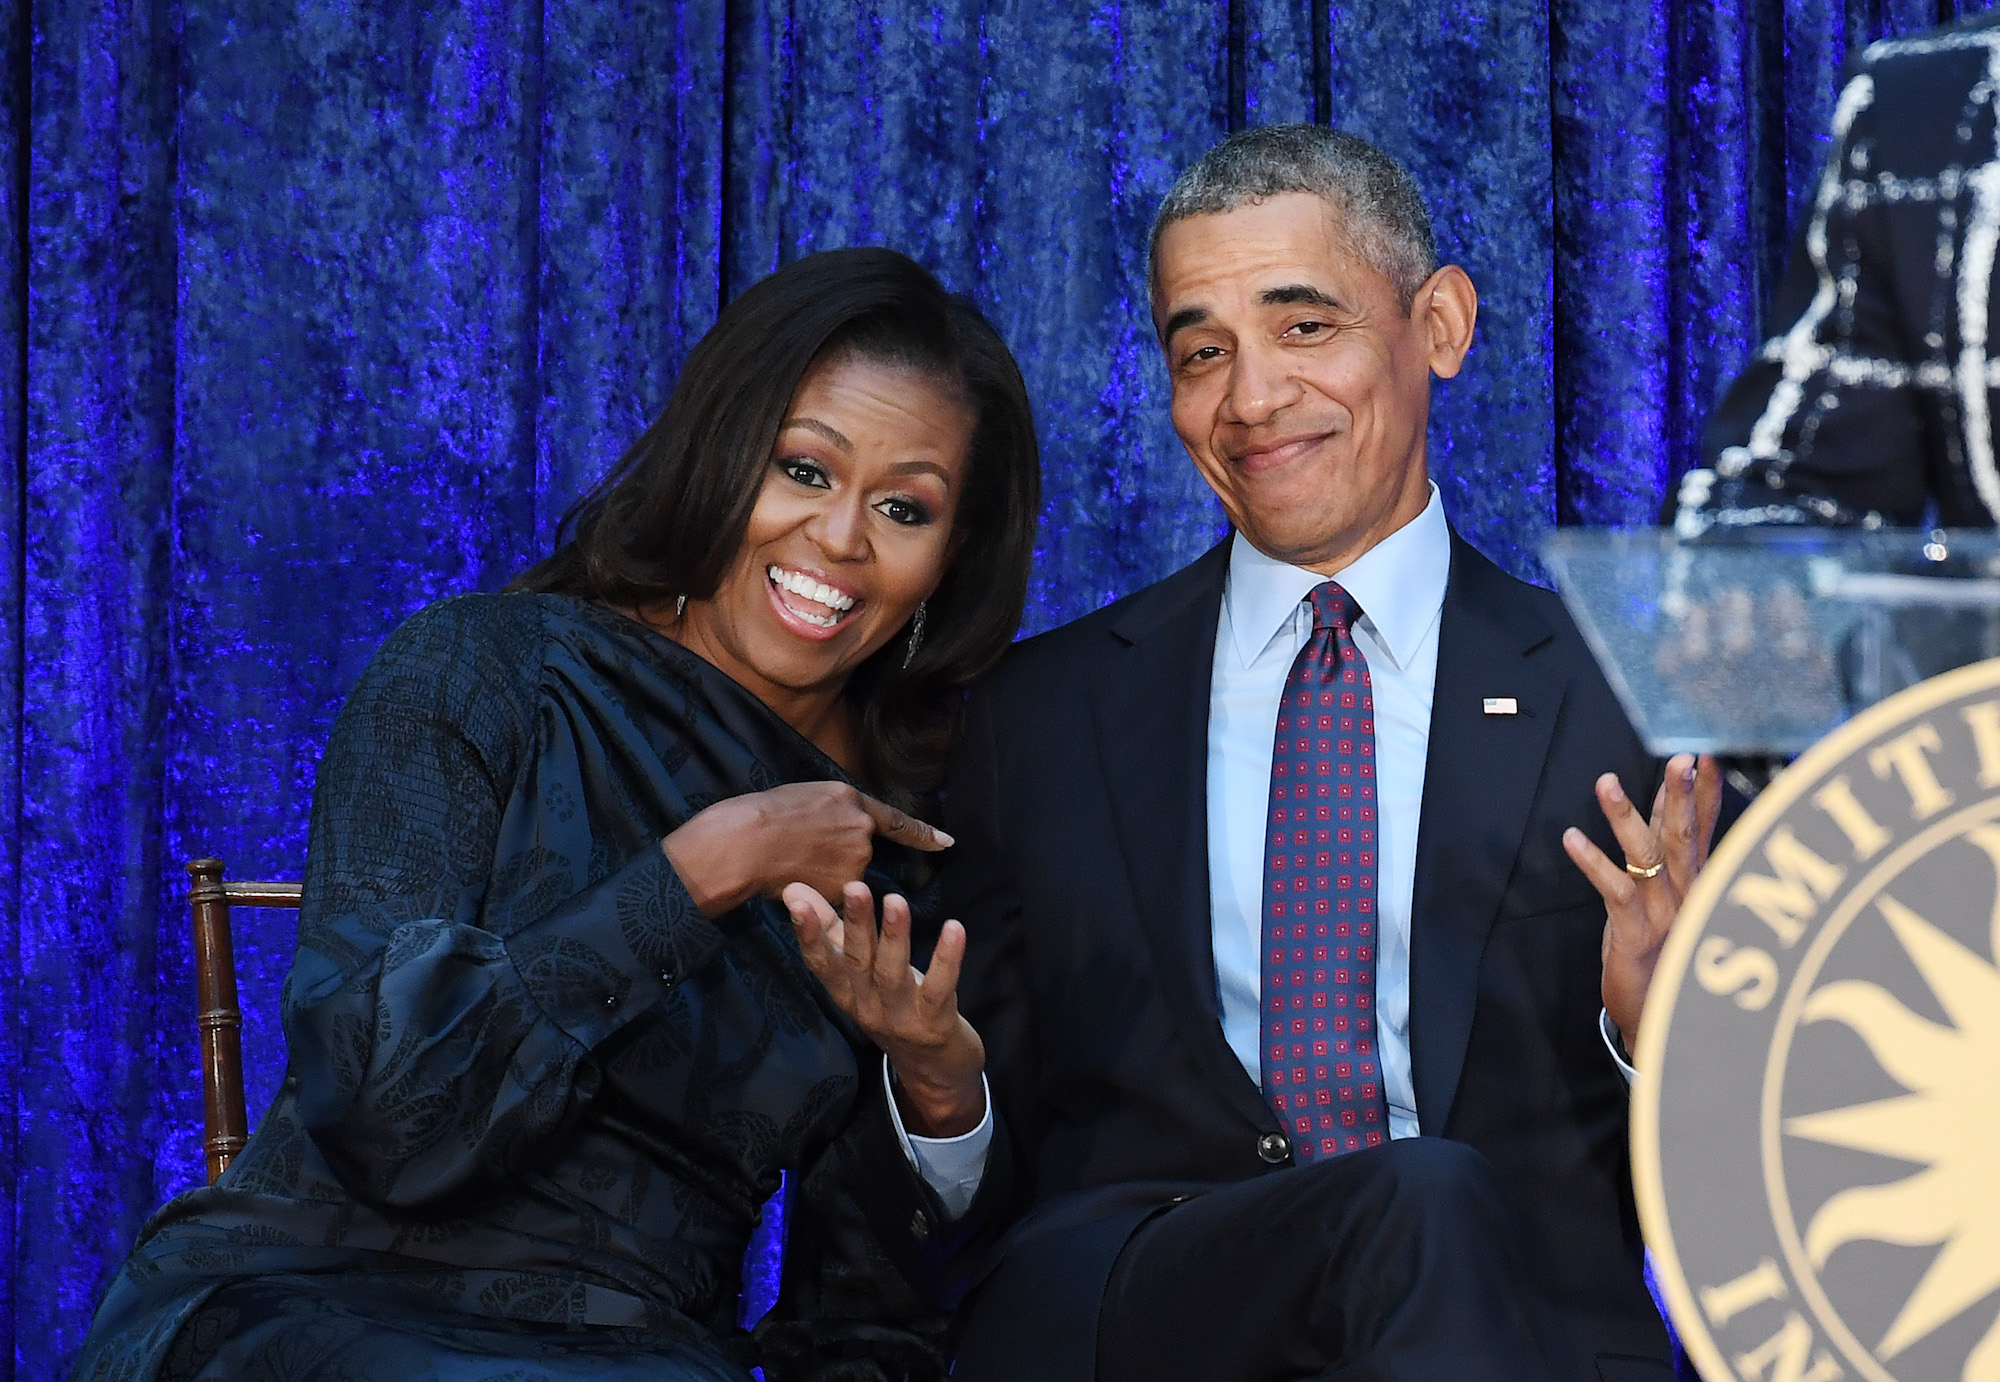 Michelle and Barack Obama Dance the Night Away at Beyoncé and Jay-Z's Concert